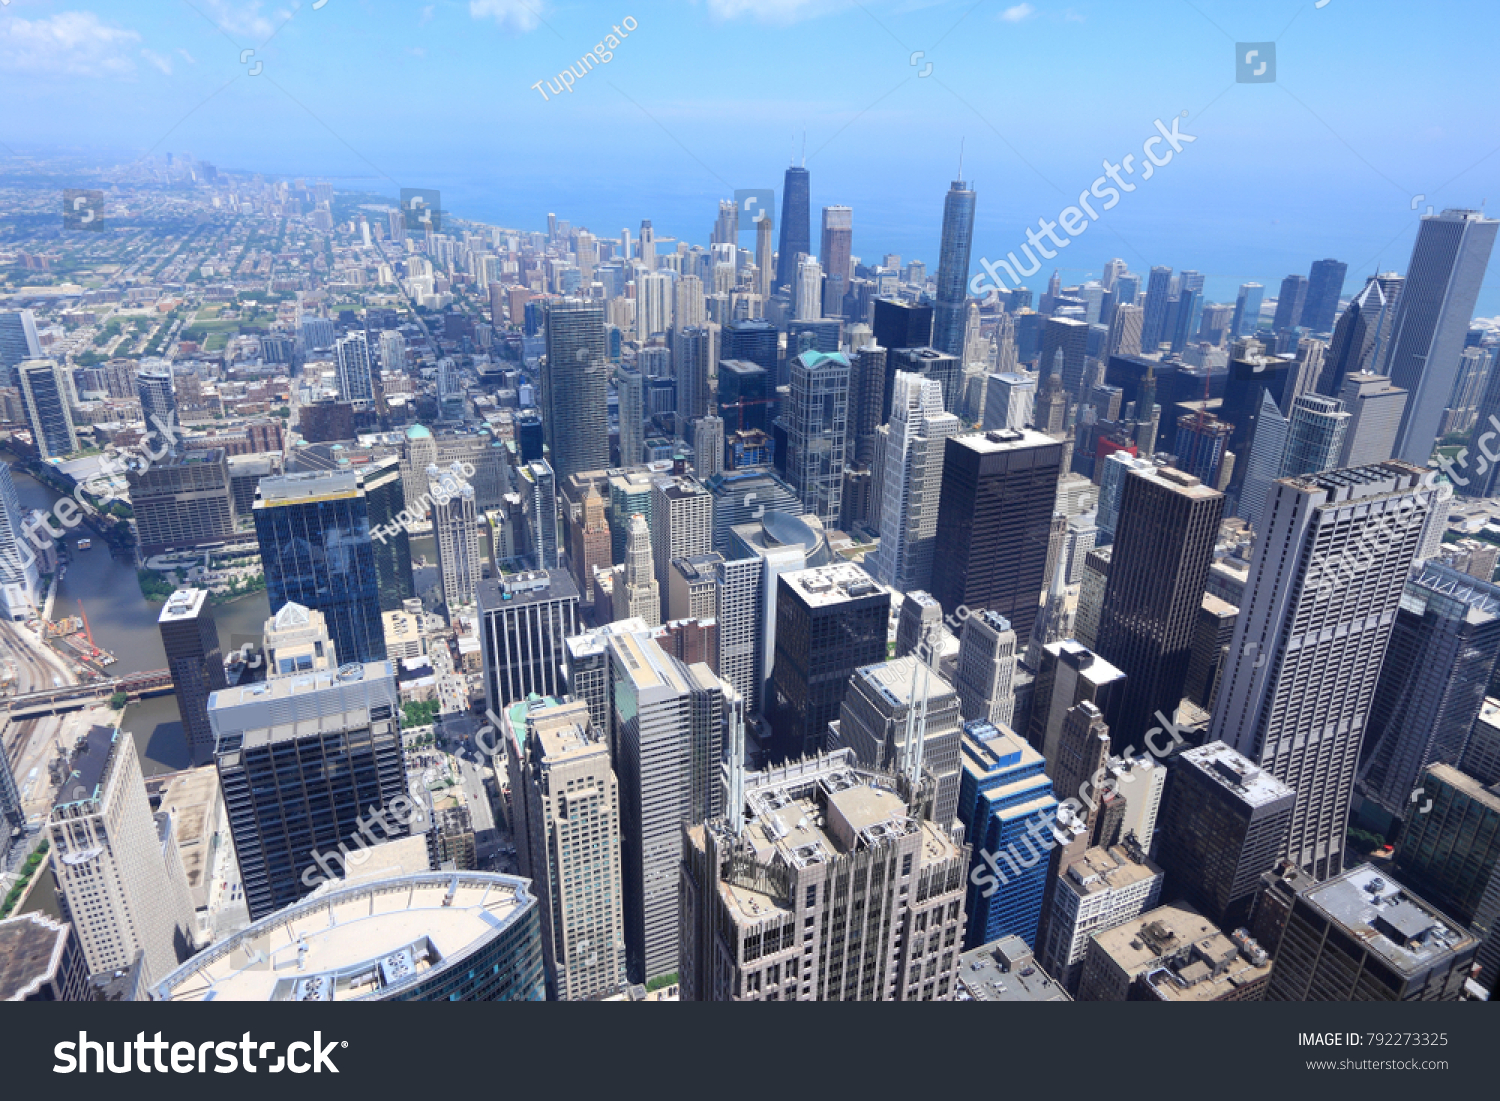 stock-photo-chicago-city-chicago-usa-792